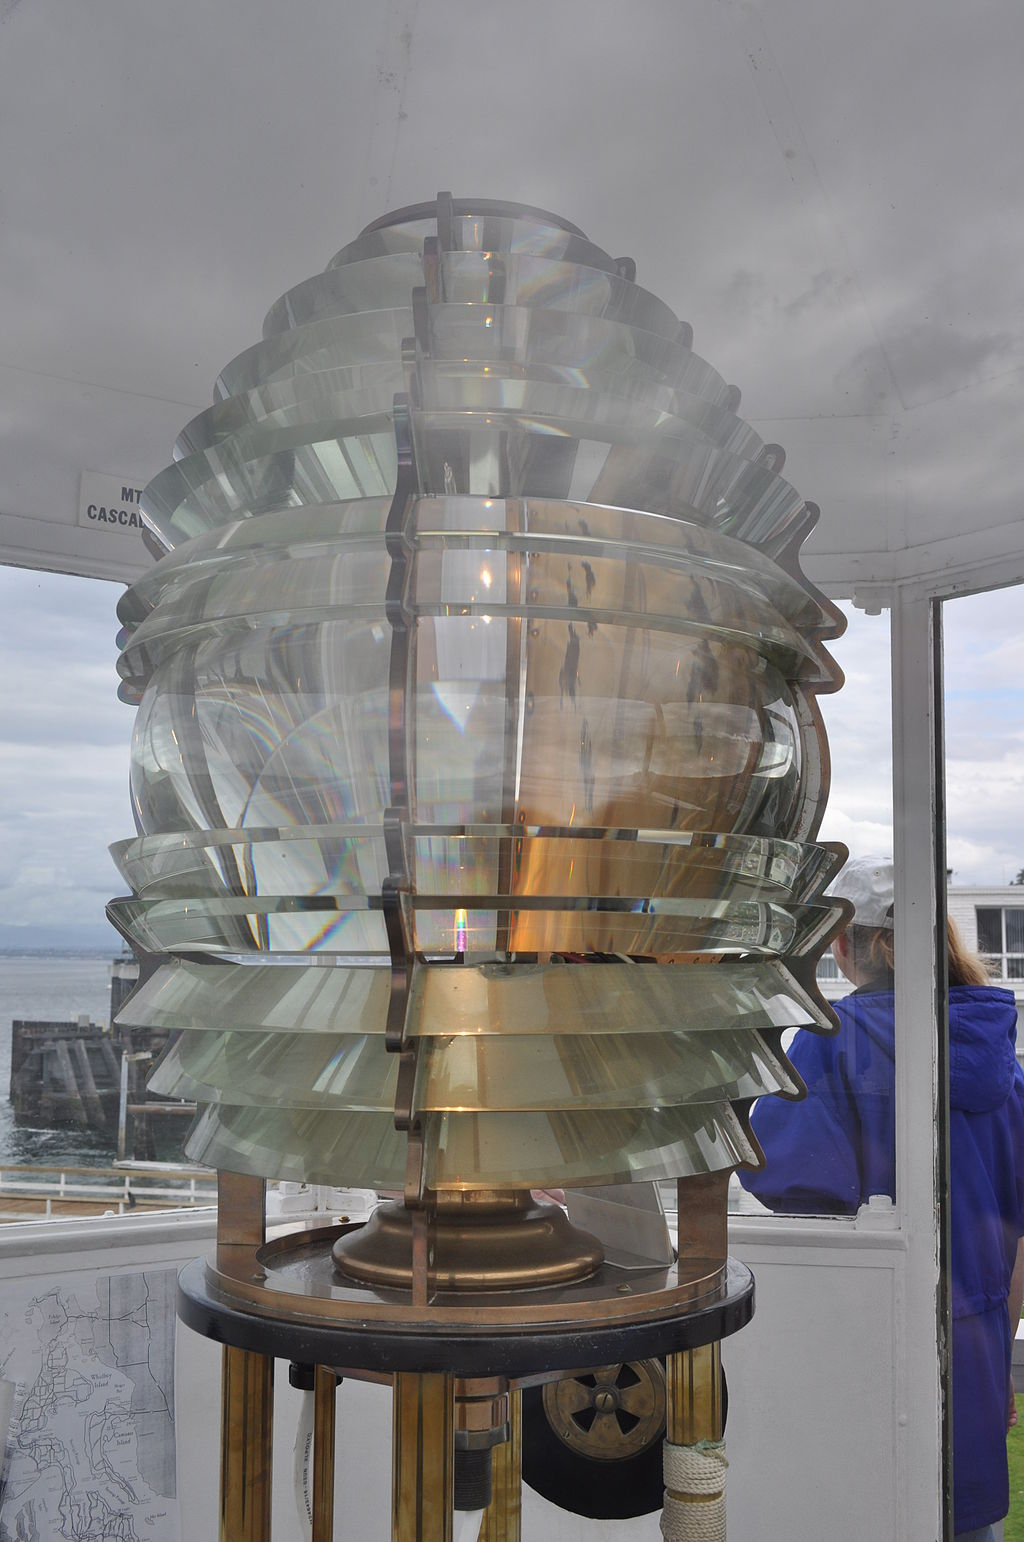 The fourth-order Fresnel Lens was manufactured in 1852.